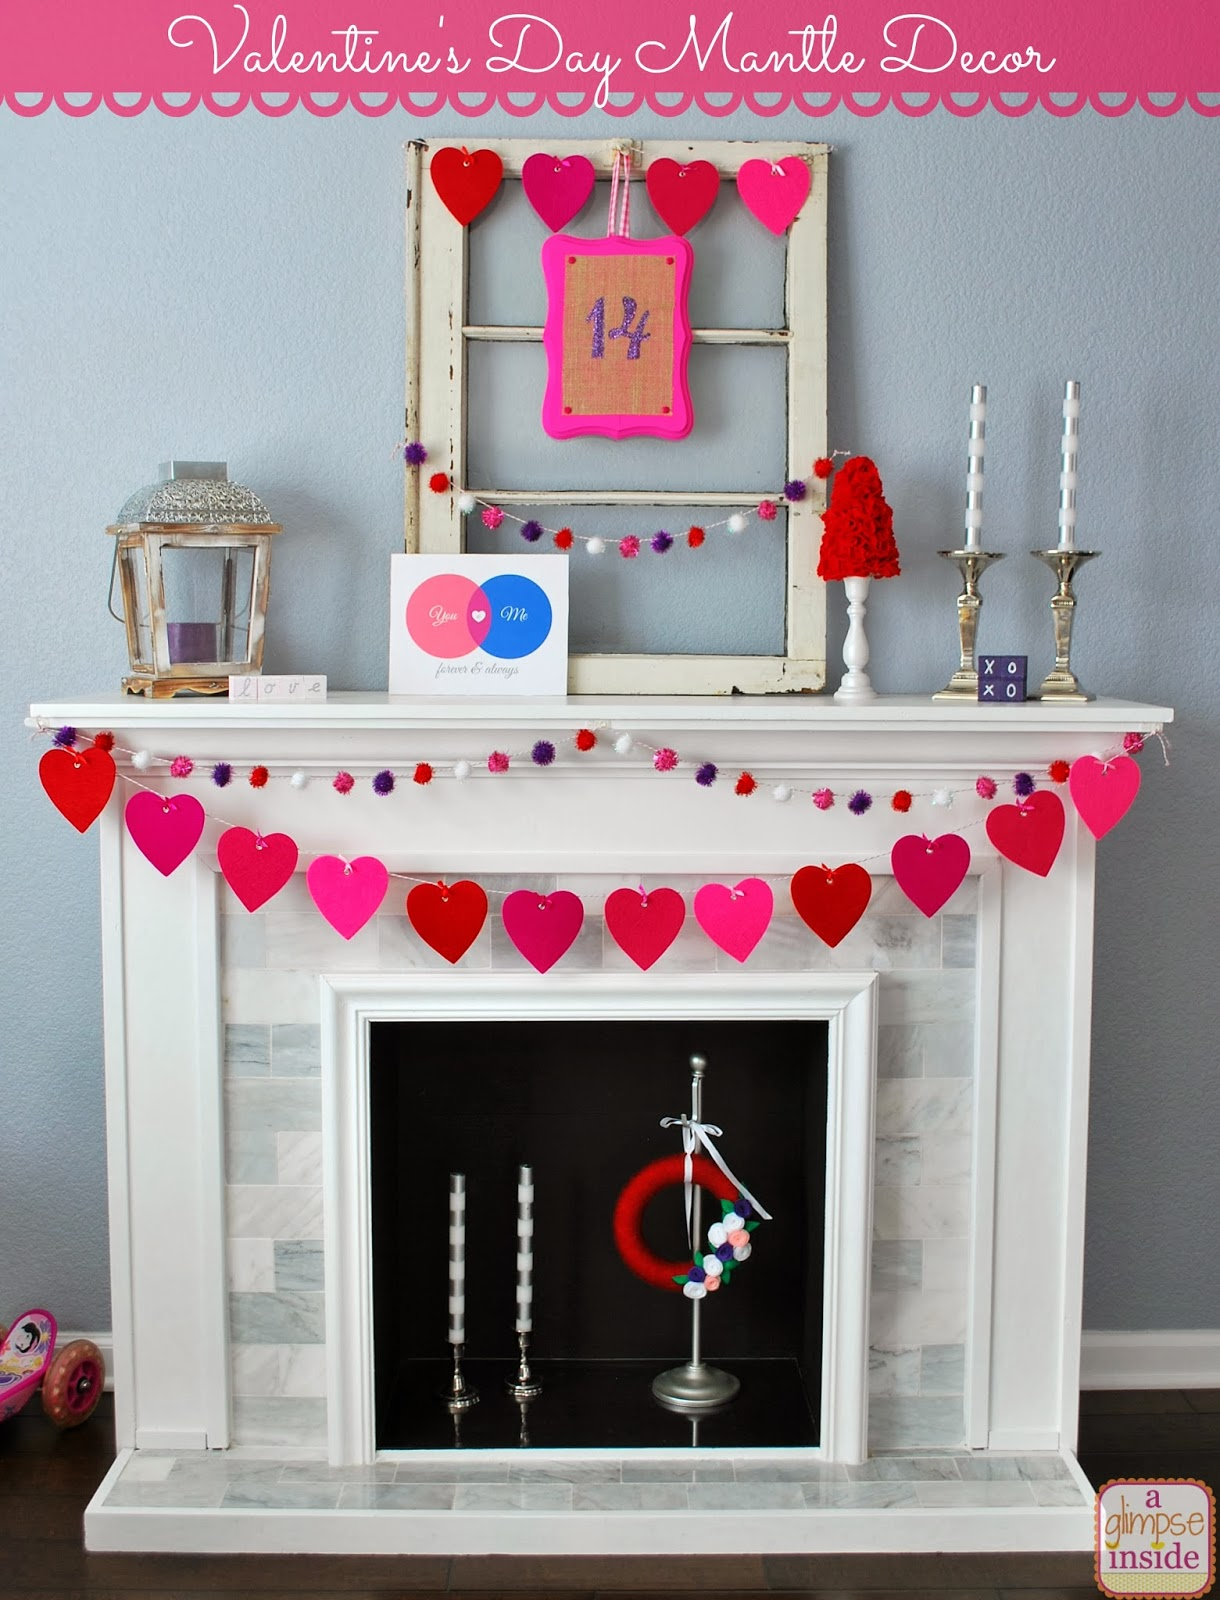 http://www.aglimpseinsideblog.com/2014/02/valentines-day-mantle-decor.html